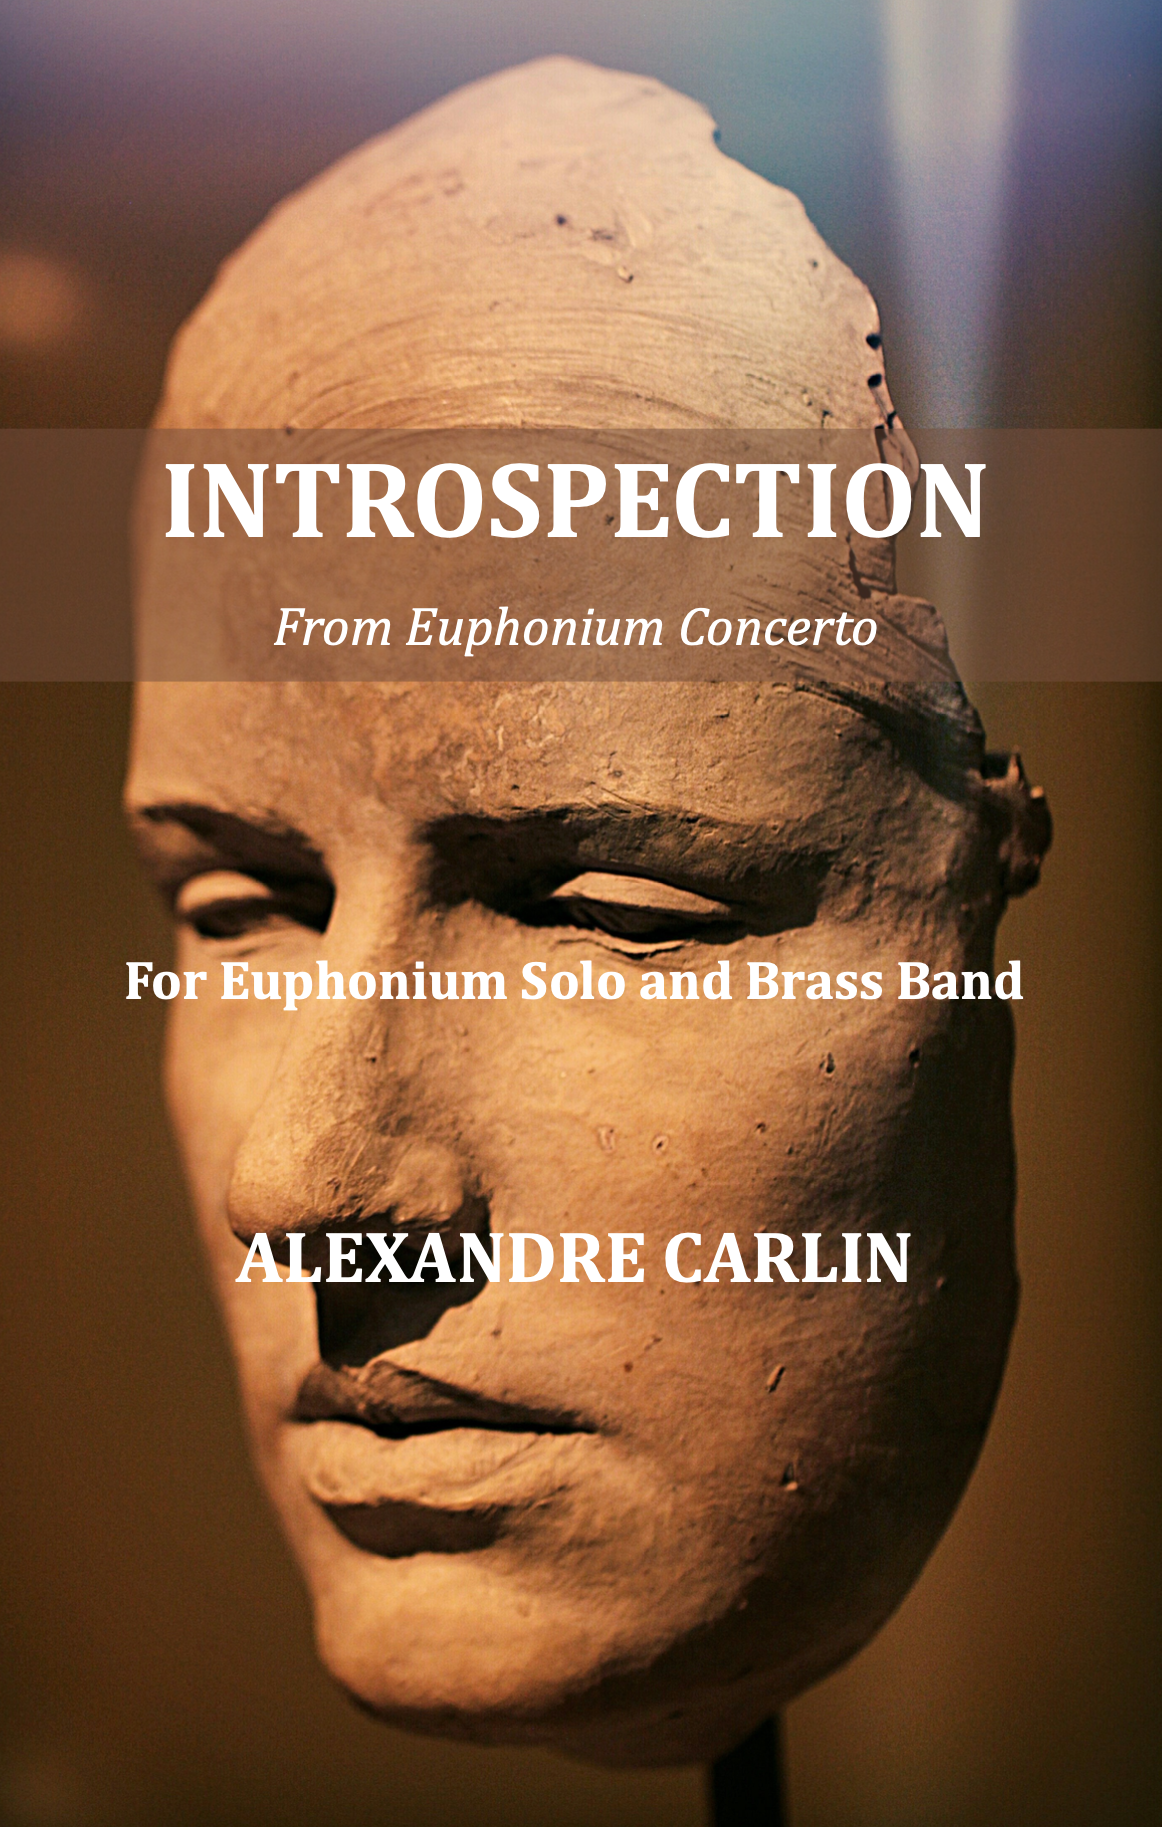 Introspection (Brass Band Version) by Alexadre Carlin